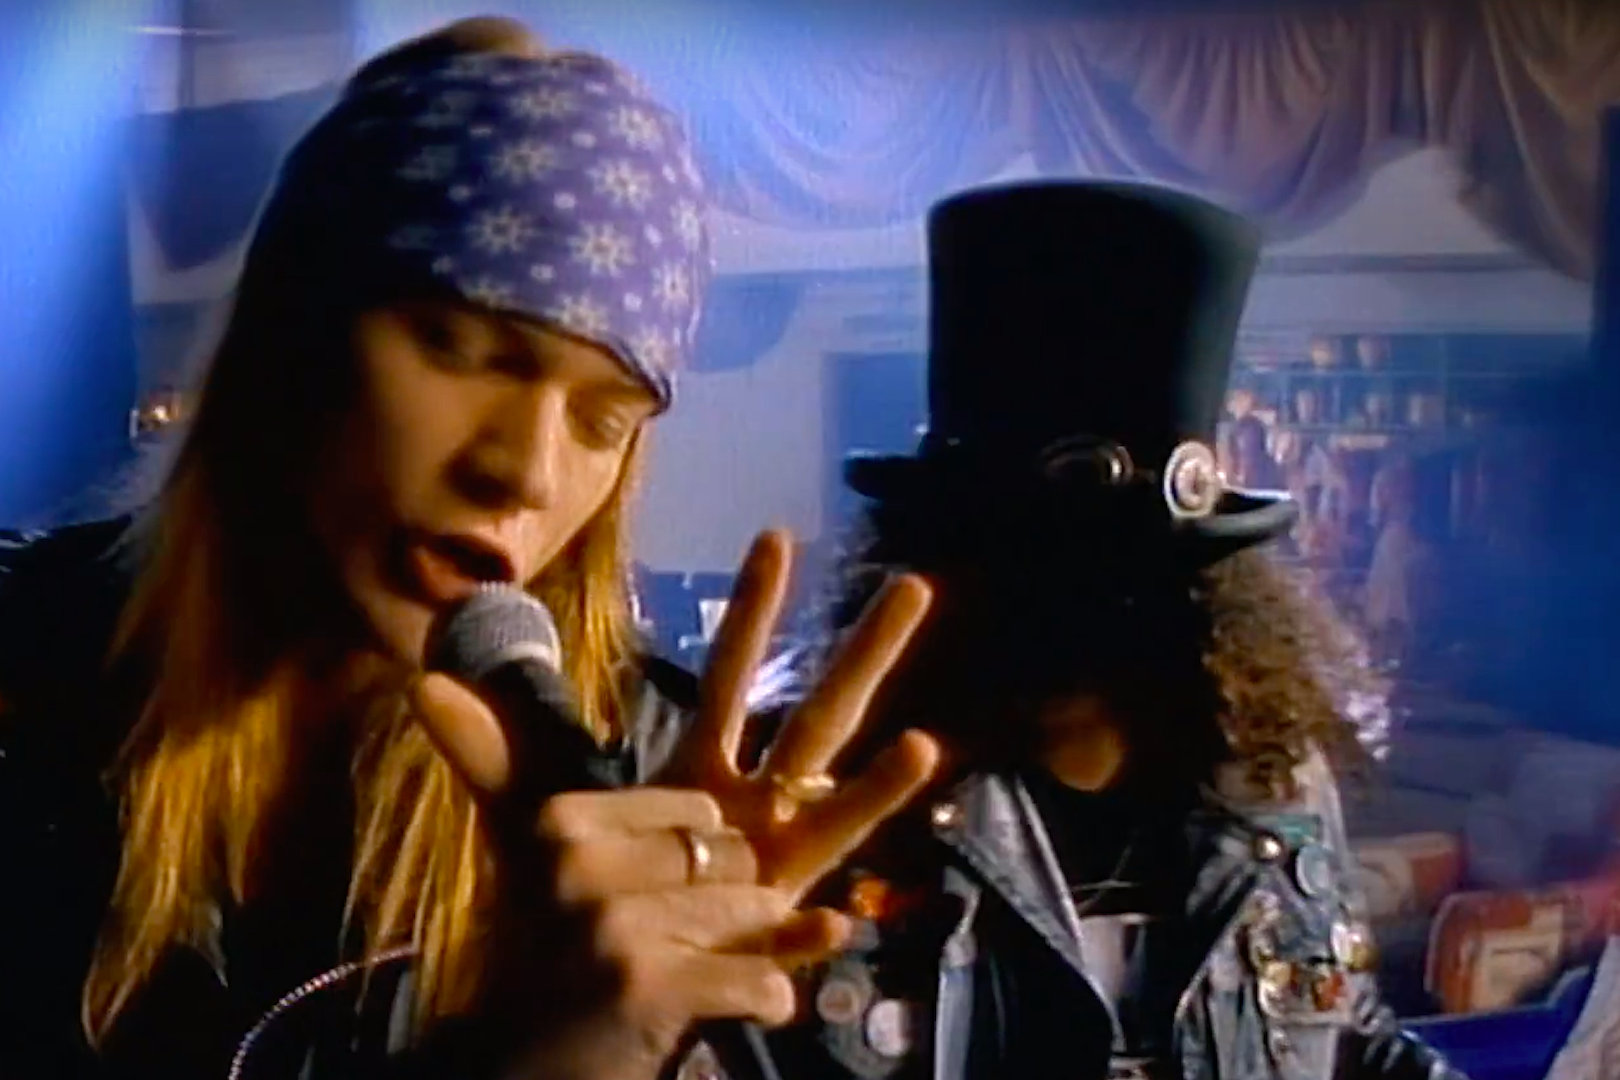 Guns N' Roses 'Sweet Child O' Mine' Is First '80s Video to Reach A Billion Views